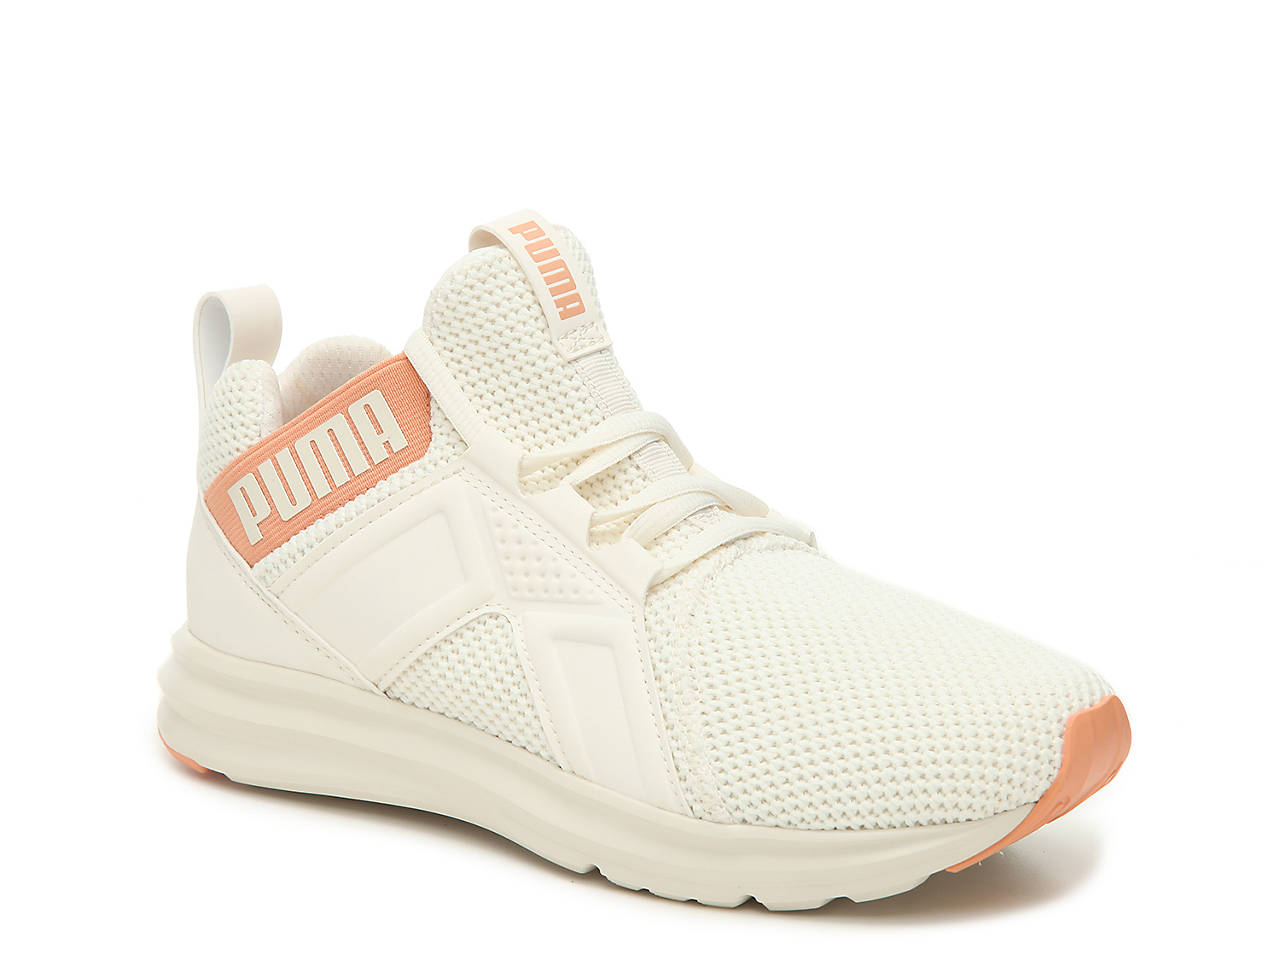 Puma Enzo Weave Training Shoe - Women s Women s Shoes  c85cc5c4a